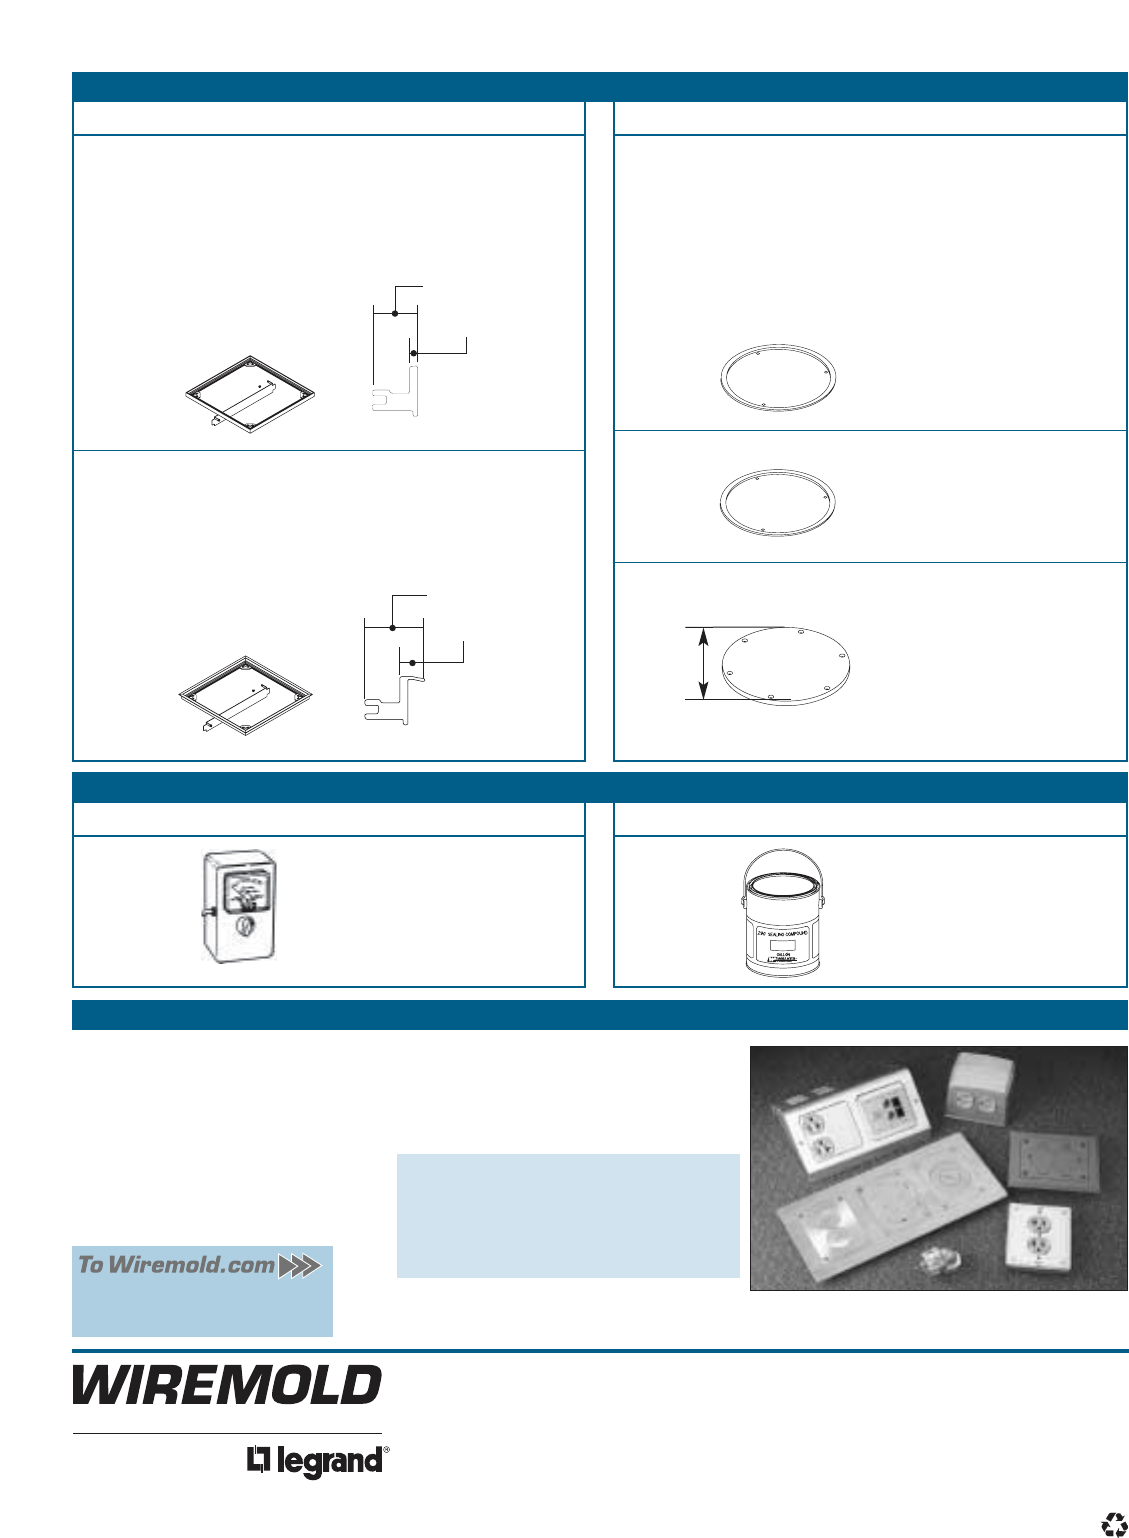 Wiremold Catalog Pdf | New Wiring Diagram 2018